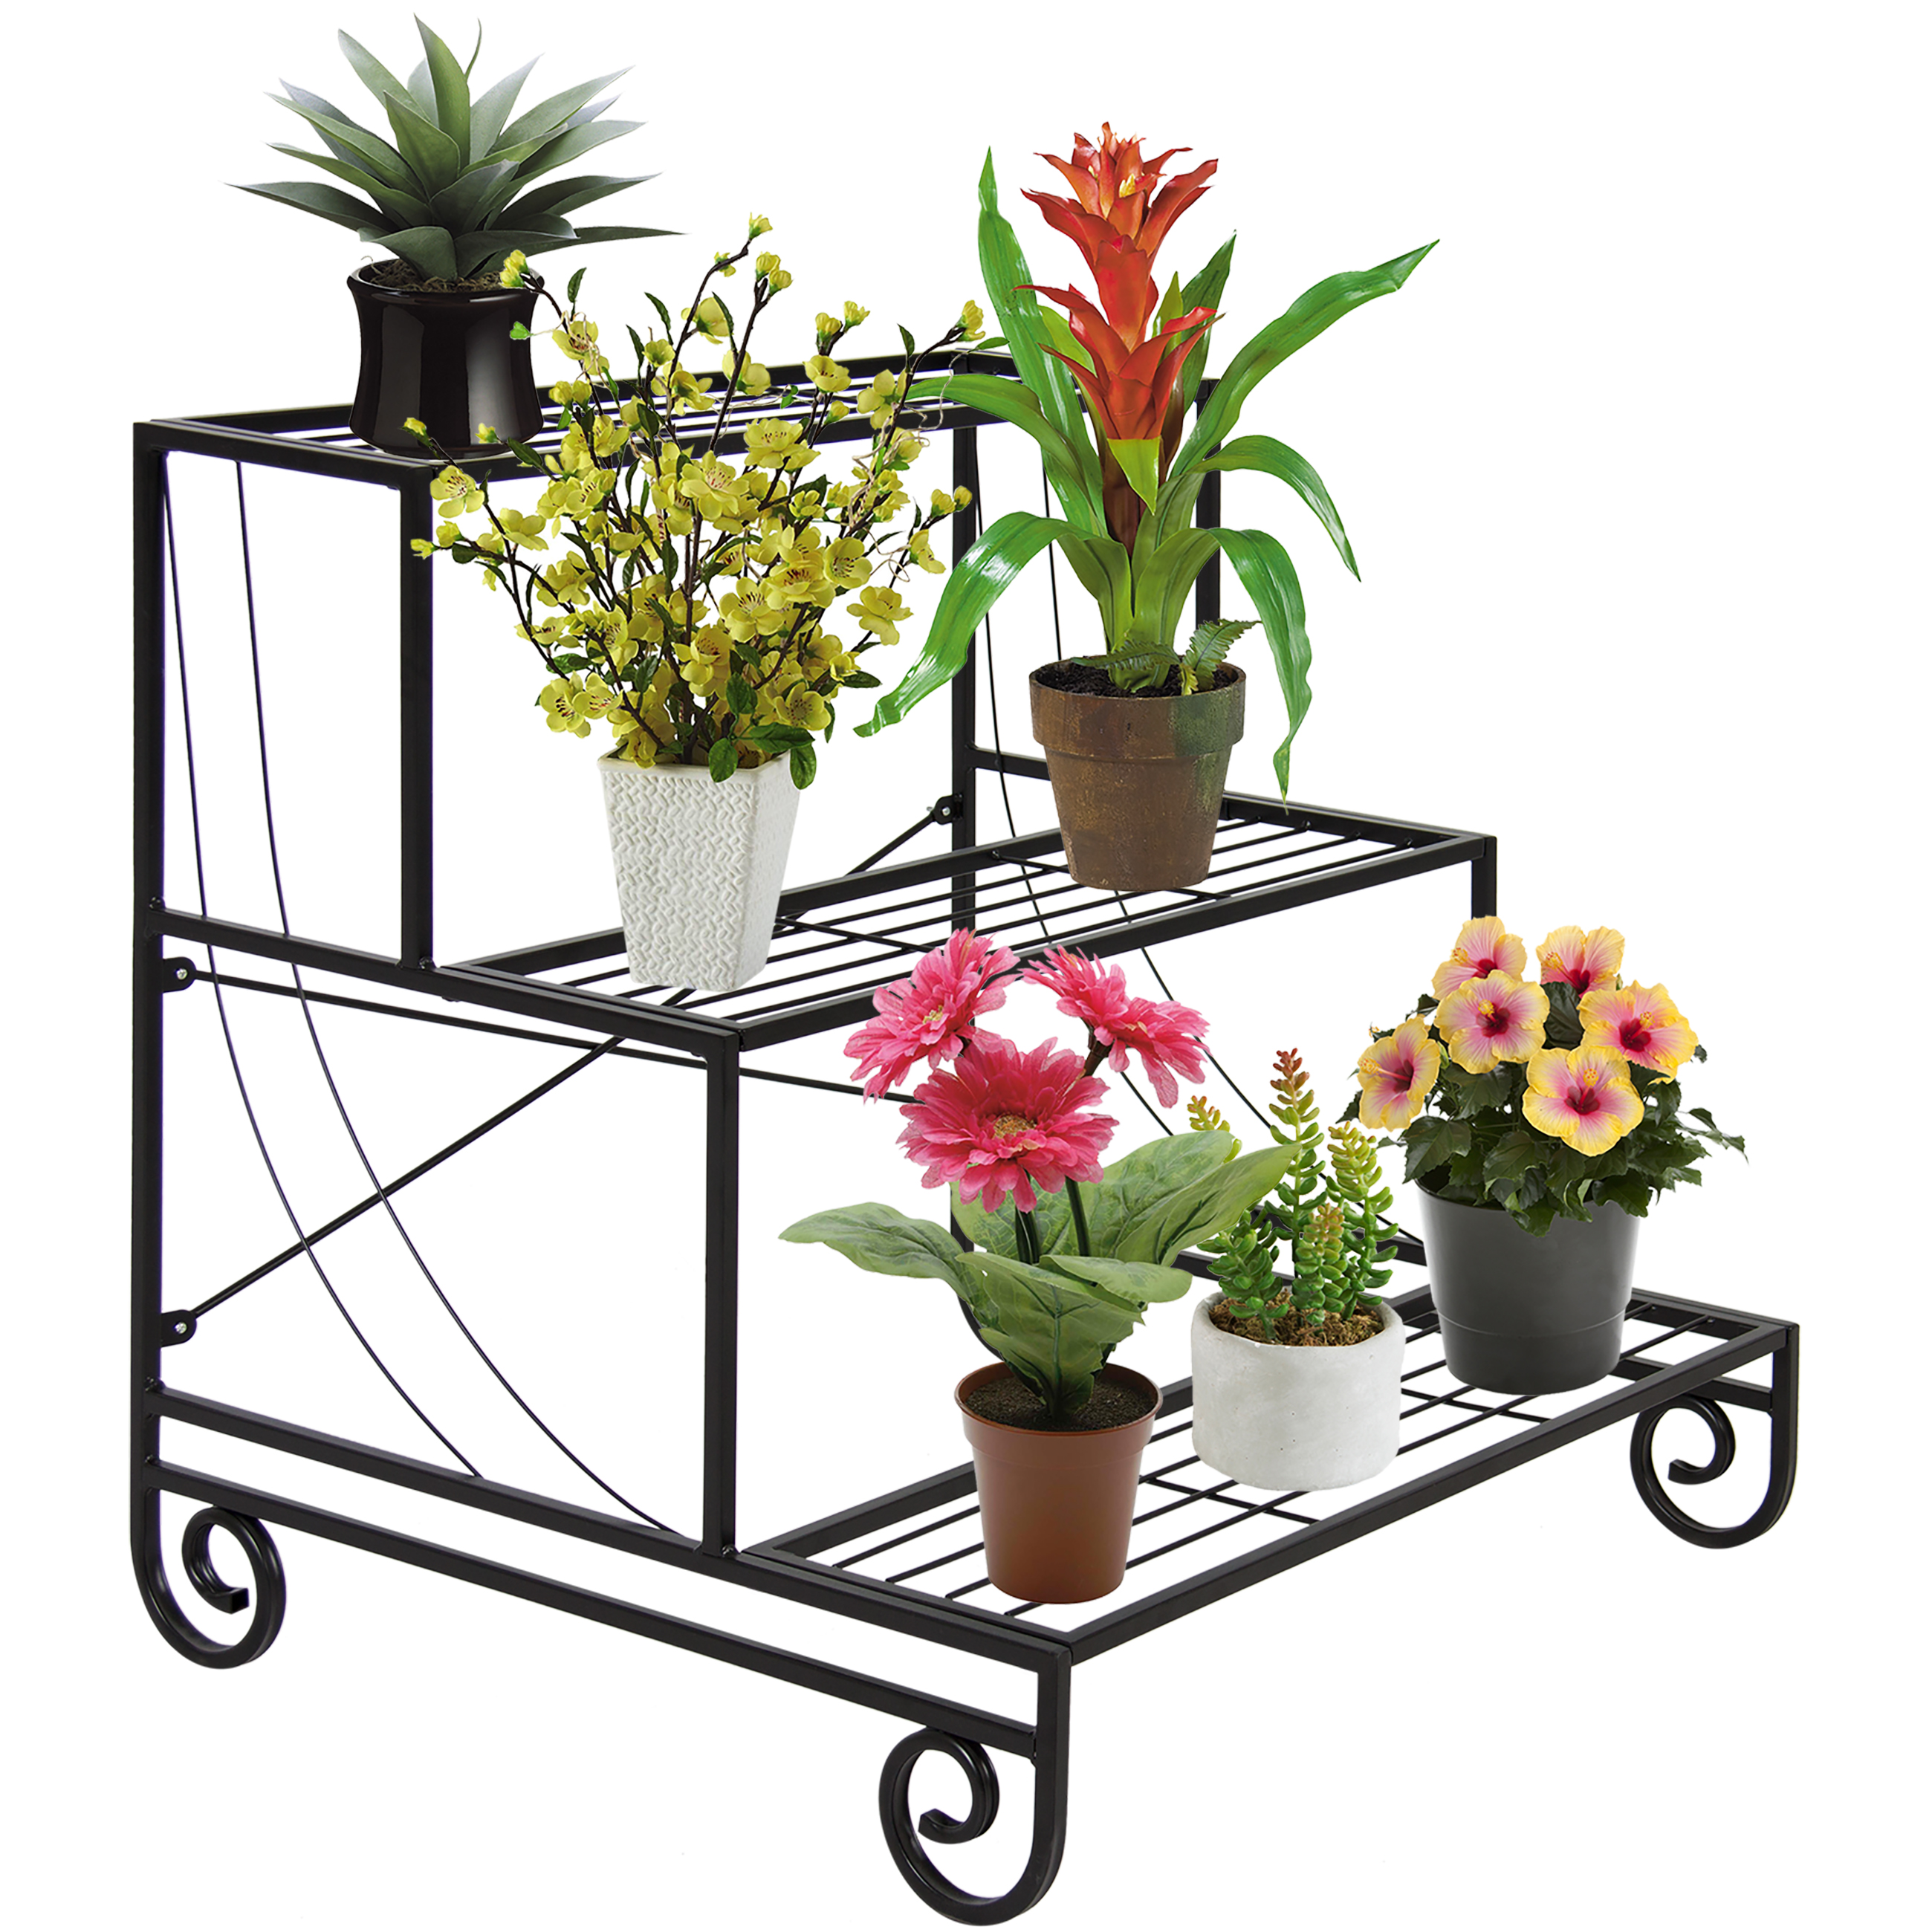 3 Tier Metal Plant Stand Decorative Planter Holder Flower Pot Shelf Rack Black by